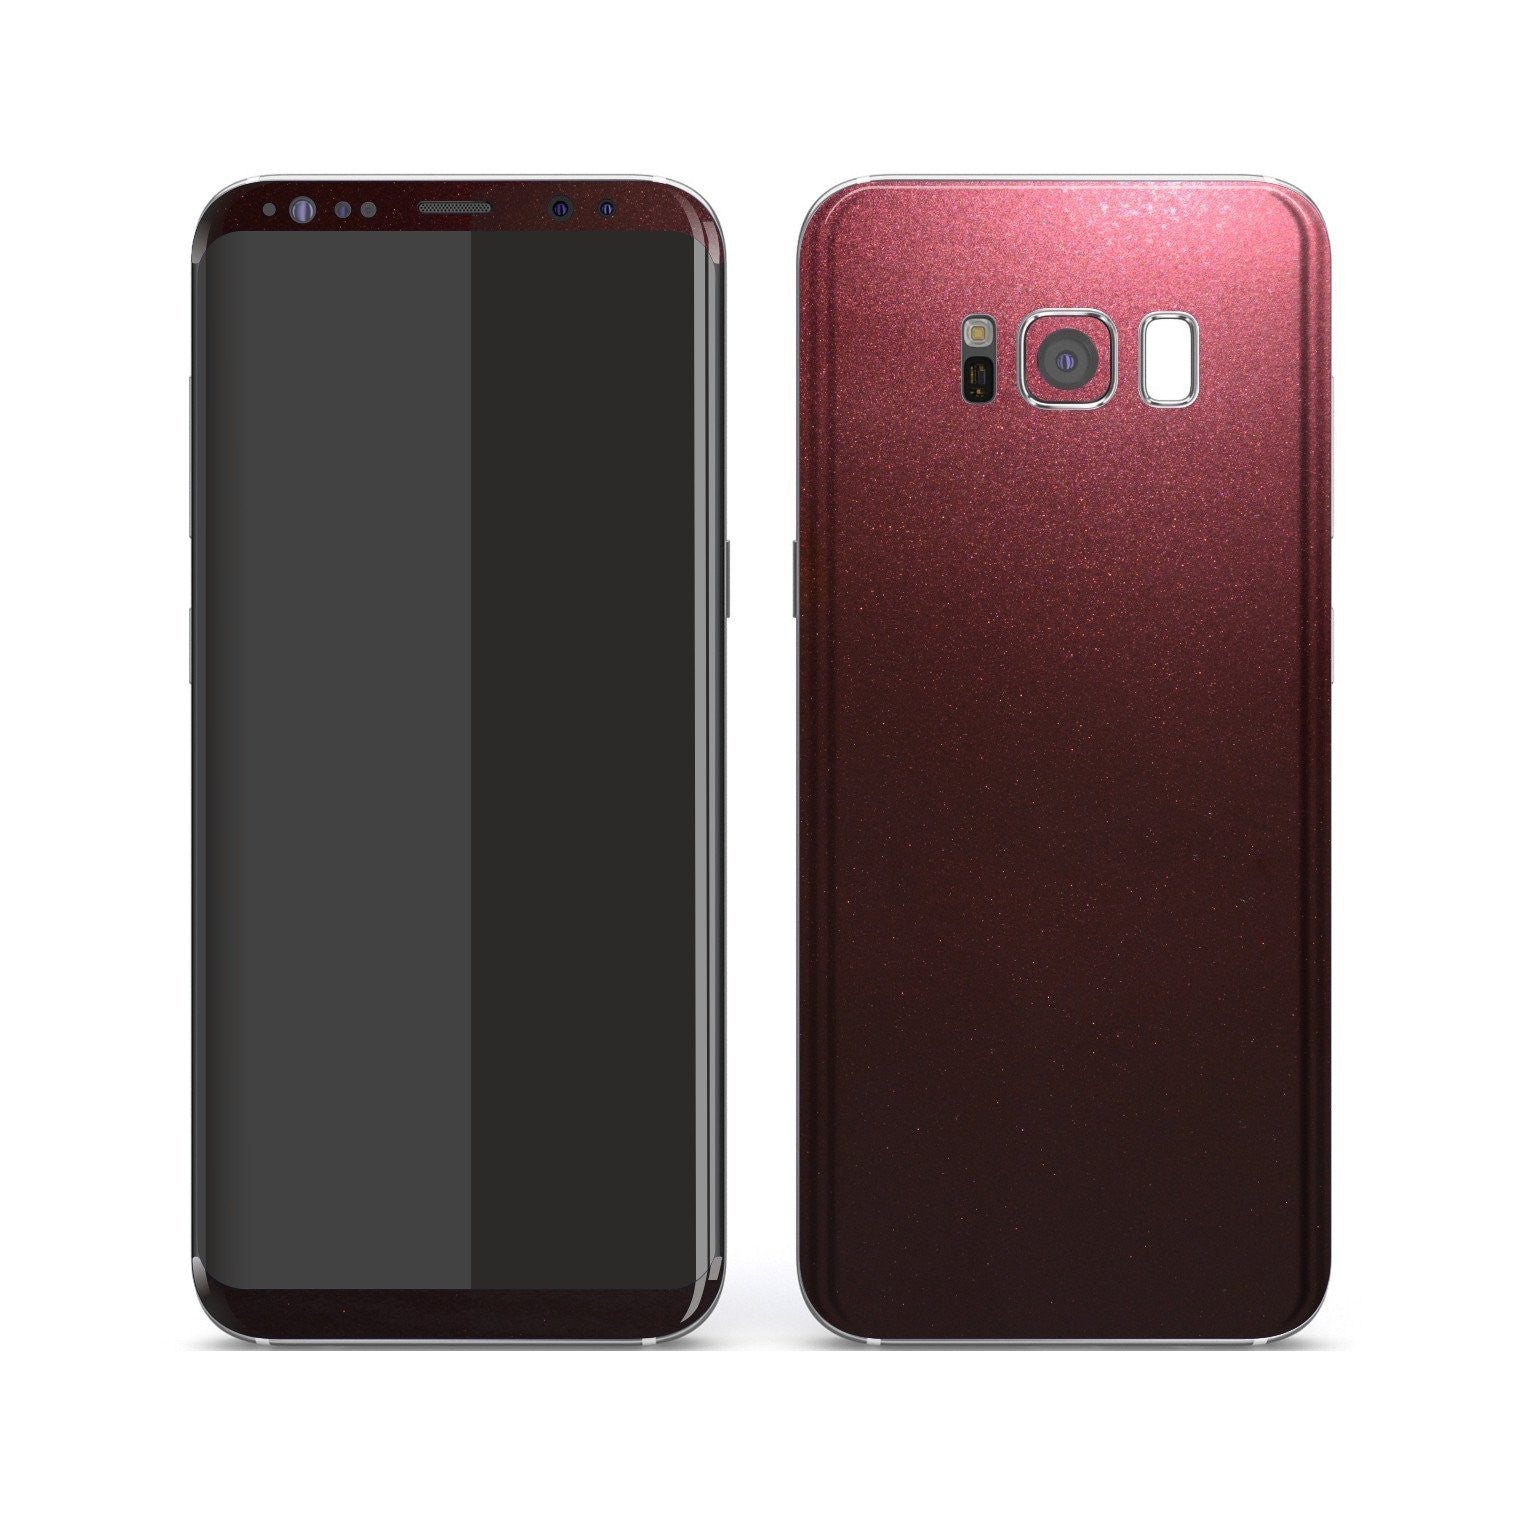 Samsung Galaxy S8+ Black Rose Glossy Metallic Skin, Decal, Wrap, Protector, Cover by EasySkinz | EasySkinz.com